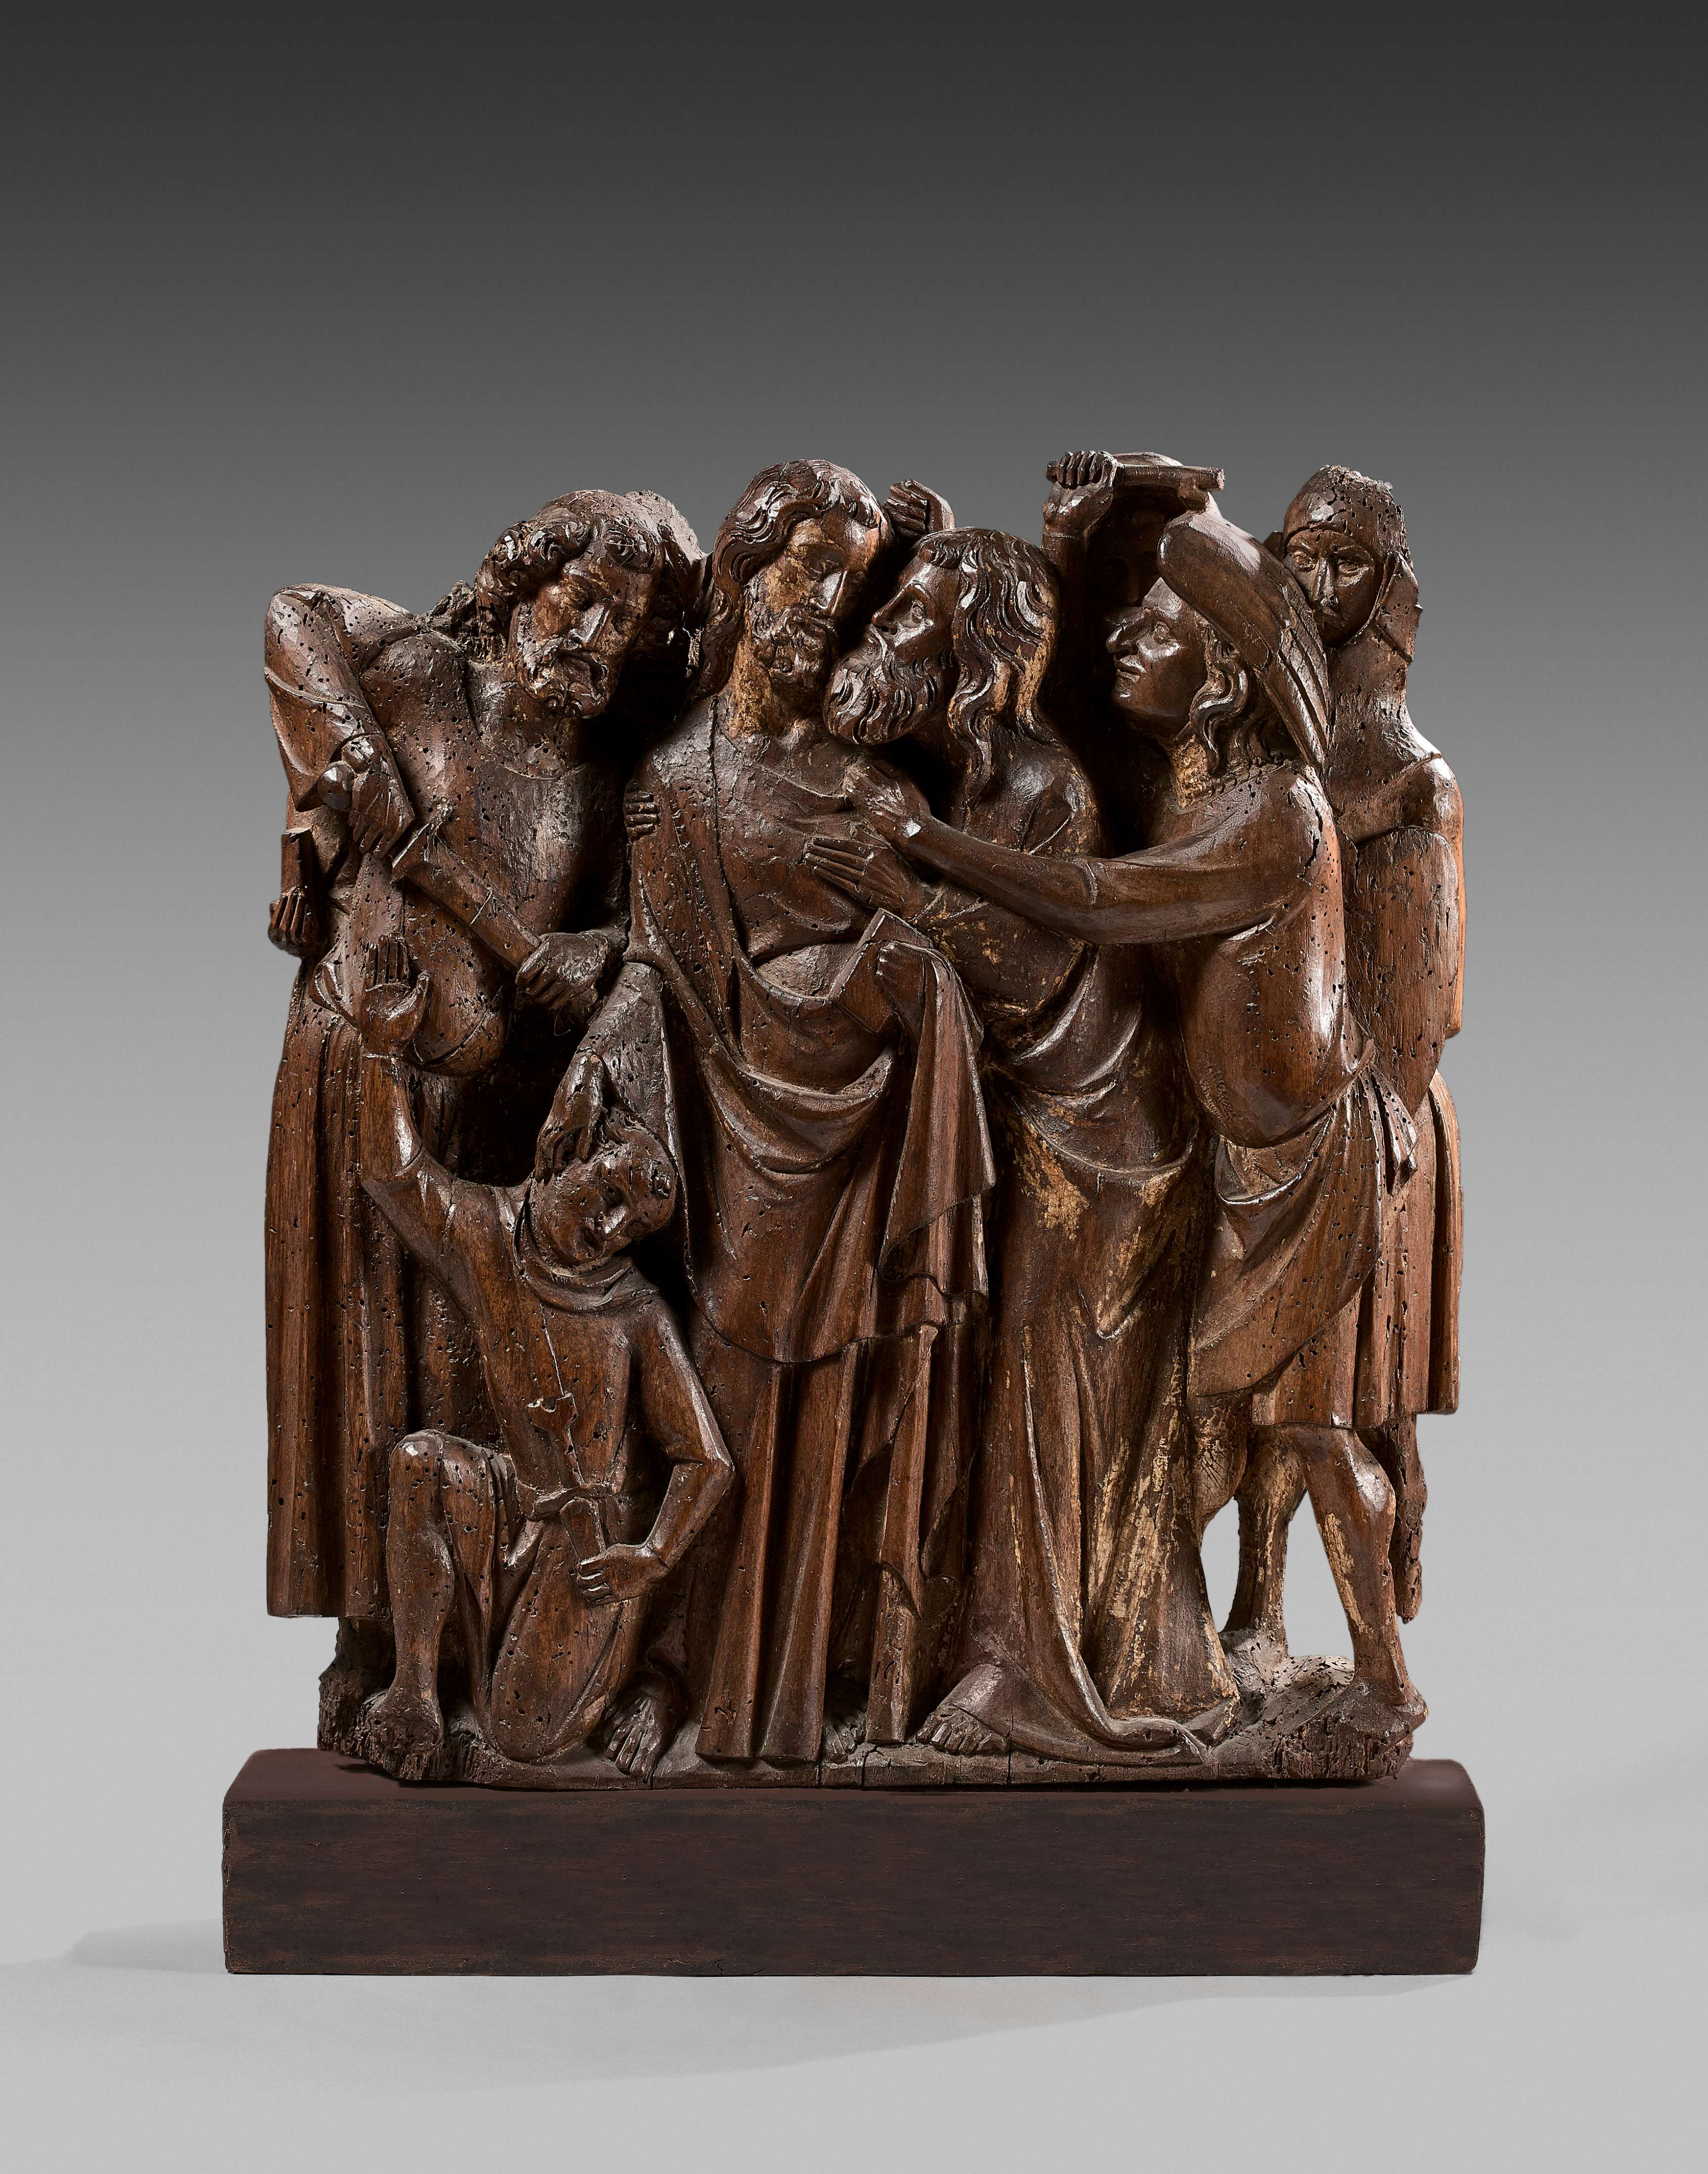 'The Arrest of Christ', relief applied in walnut wood with traces of polychromy. Photo: Artcurial